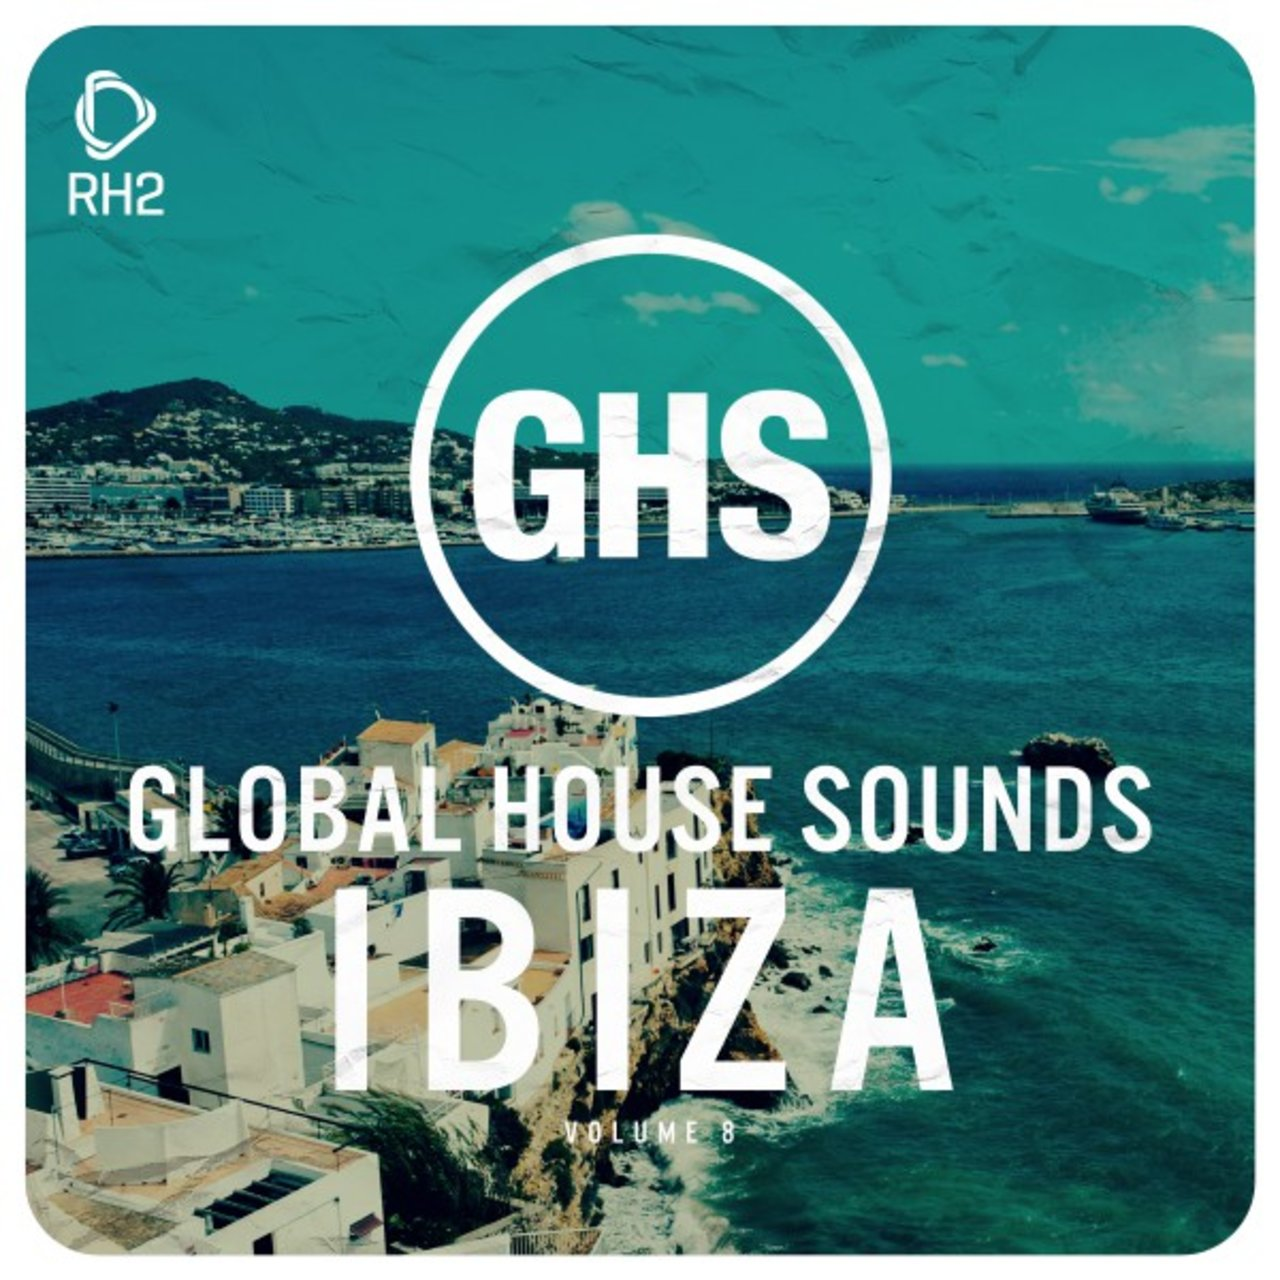 Global House Sounds - Ibiza, Vol. 8